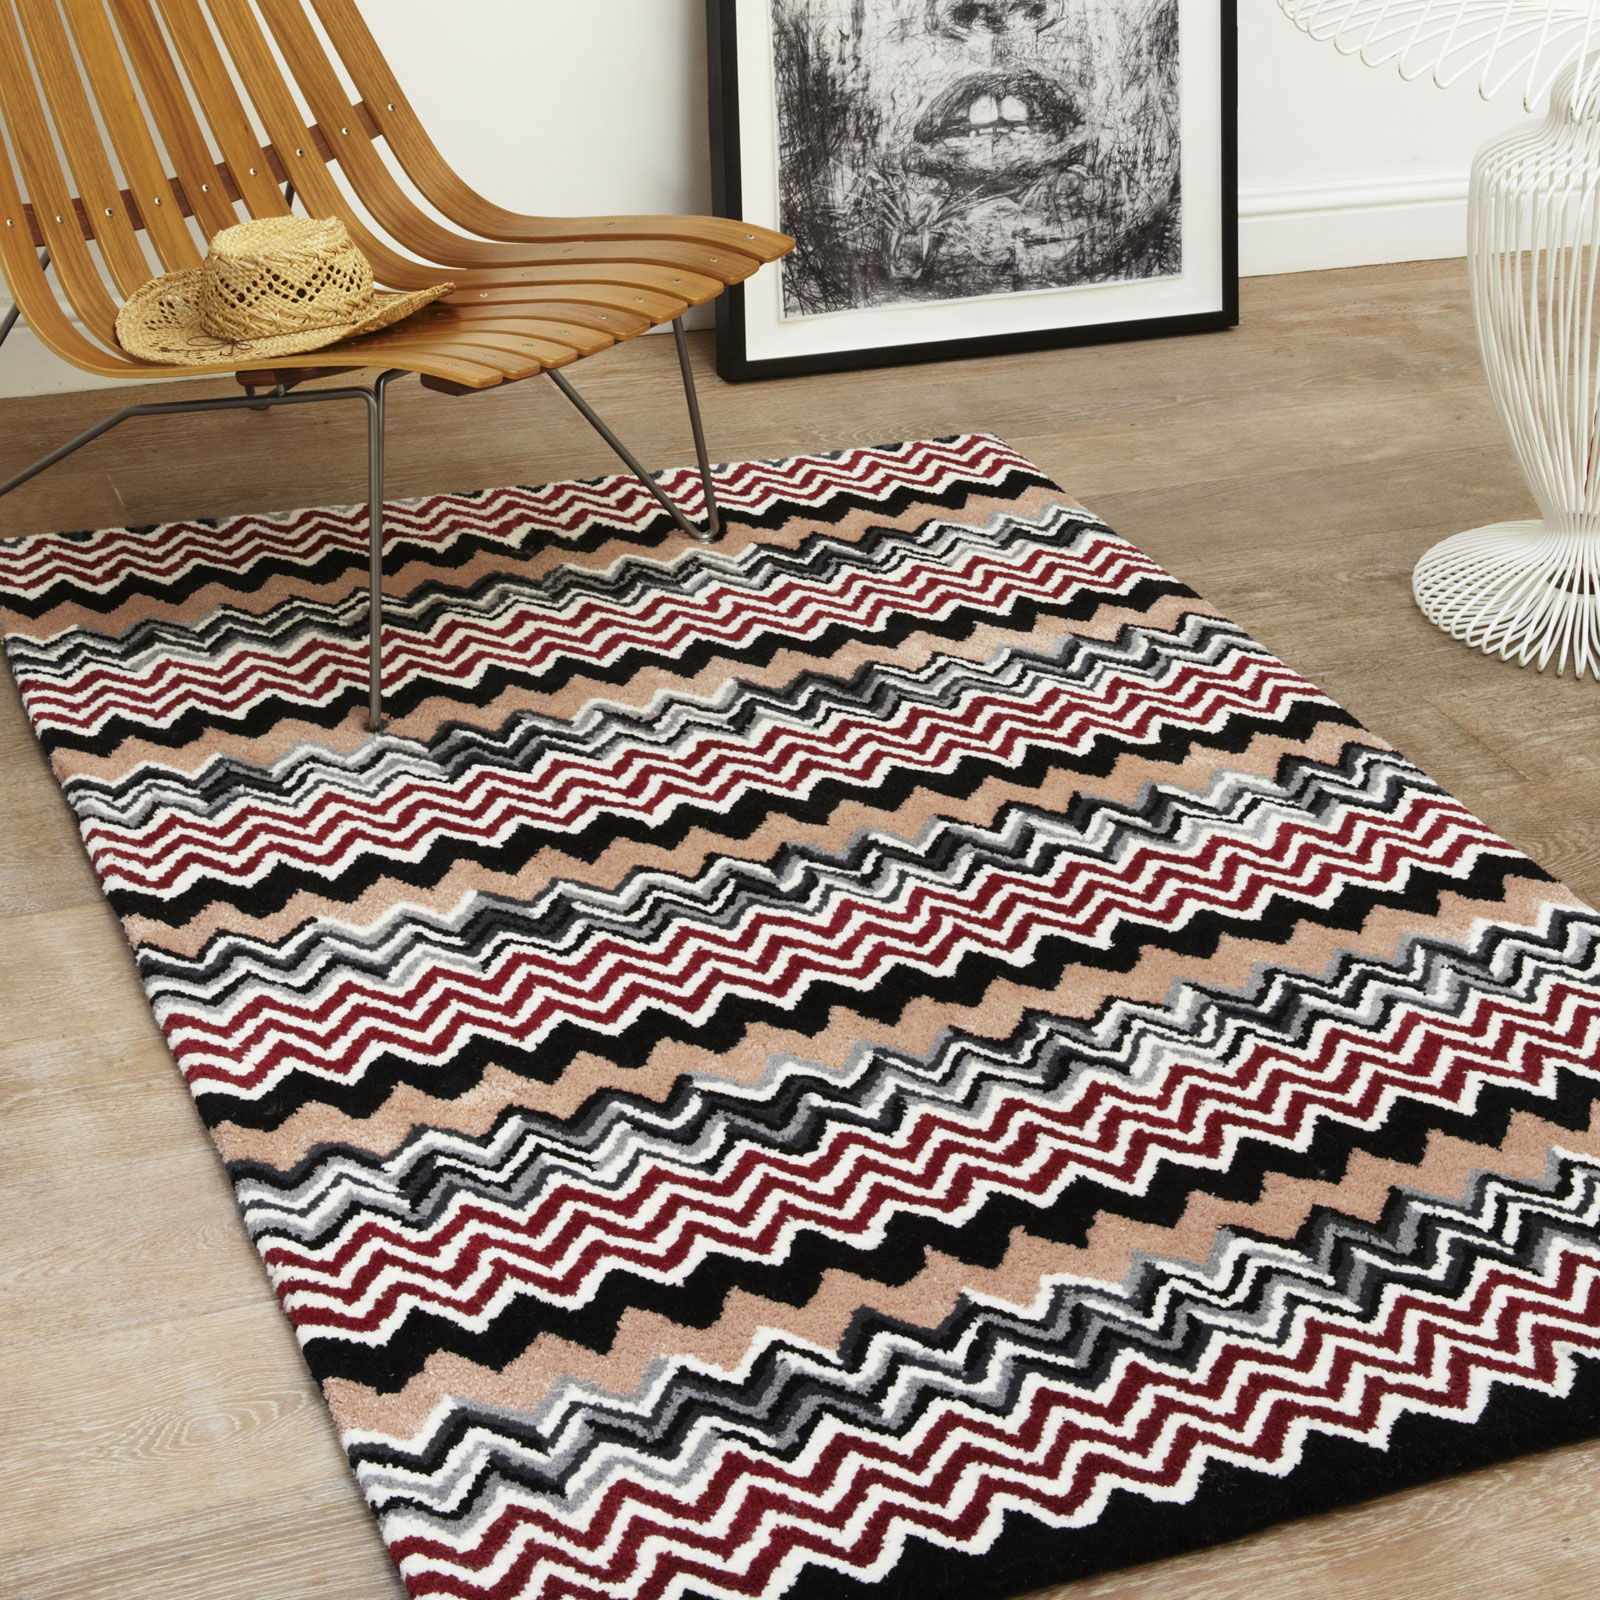 Aztec Wool Rugs